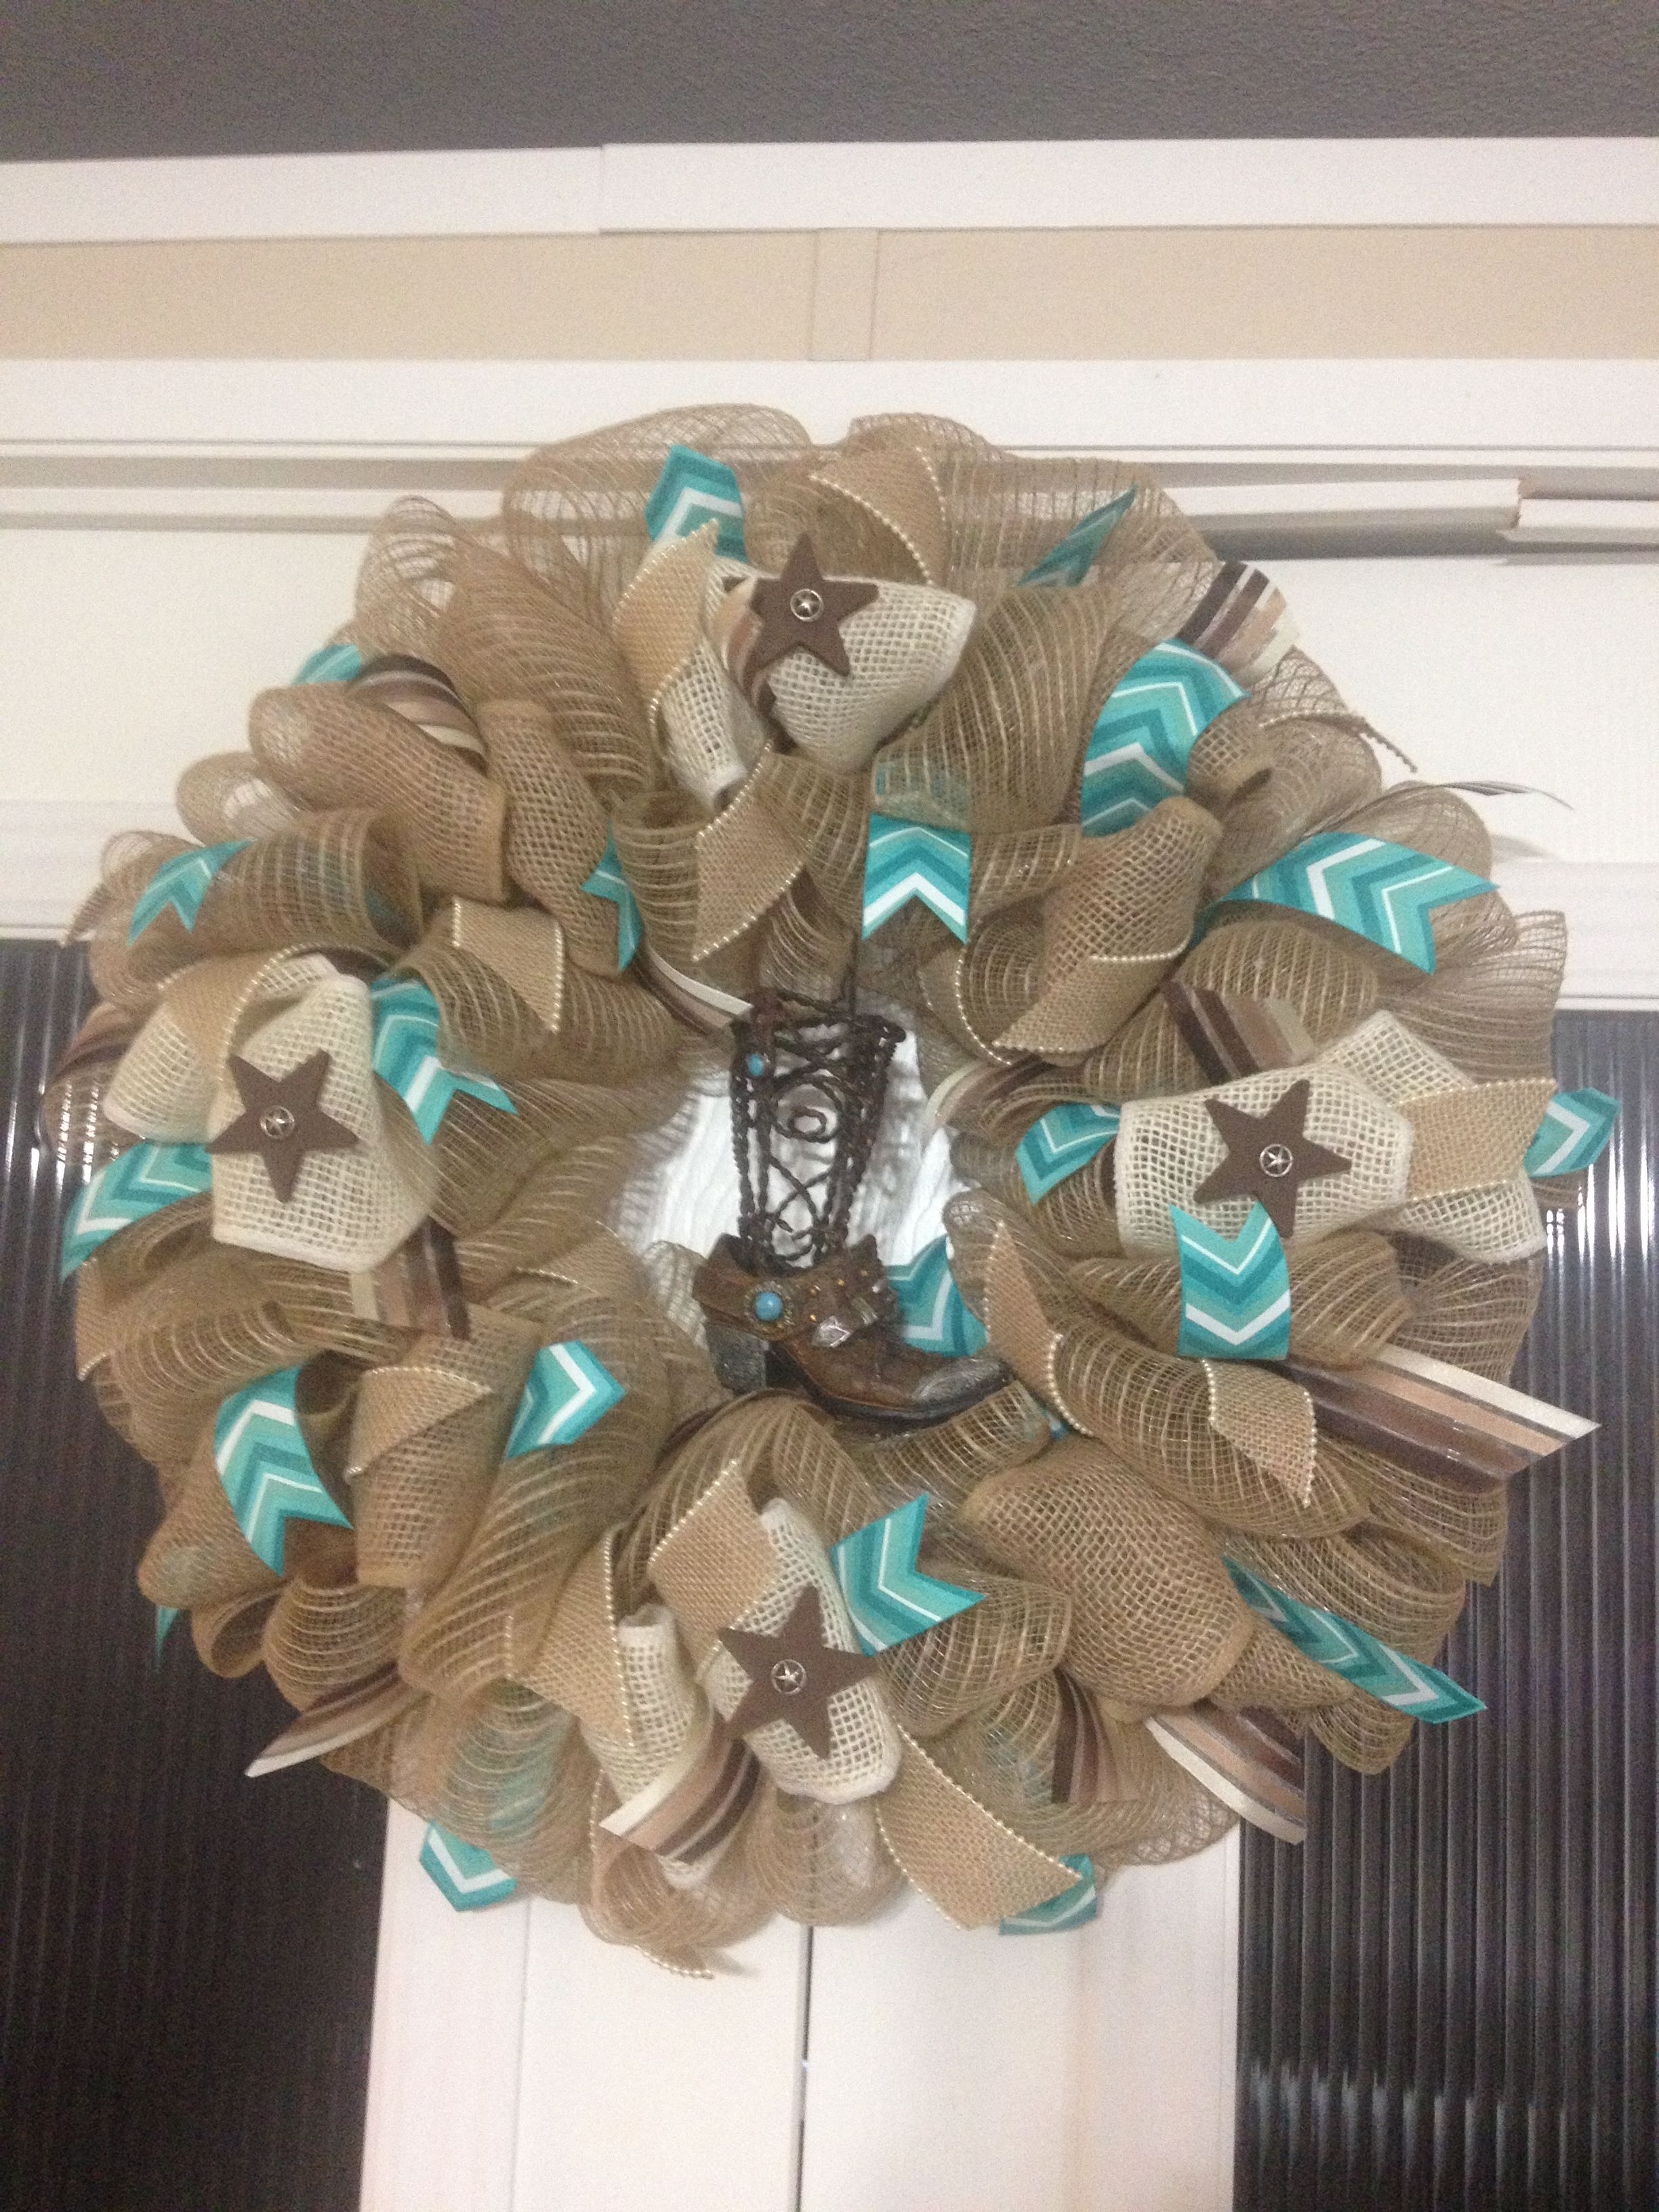 Western wreath with boot and turqoise color and stars created and designed by Ronda Cromeens. Large 50$. Made with burlap